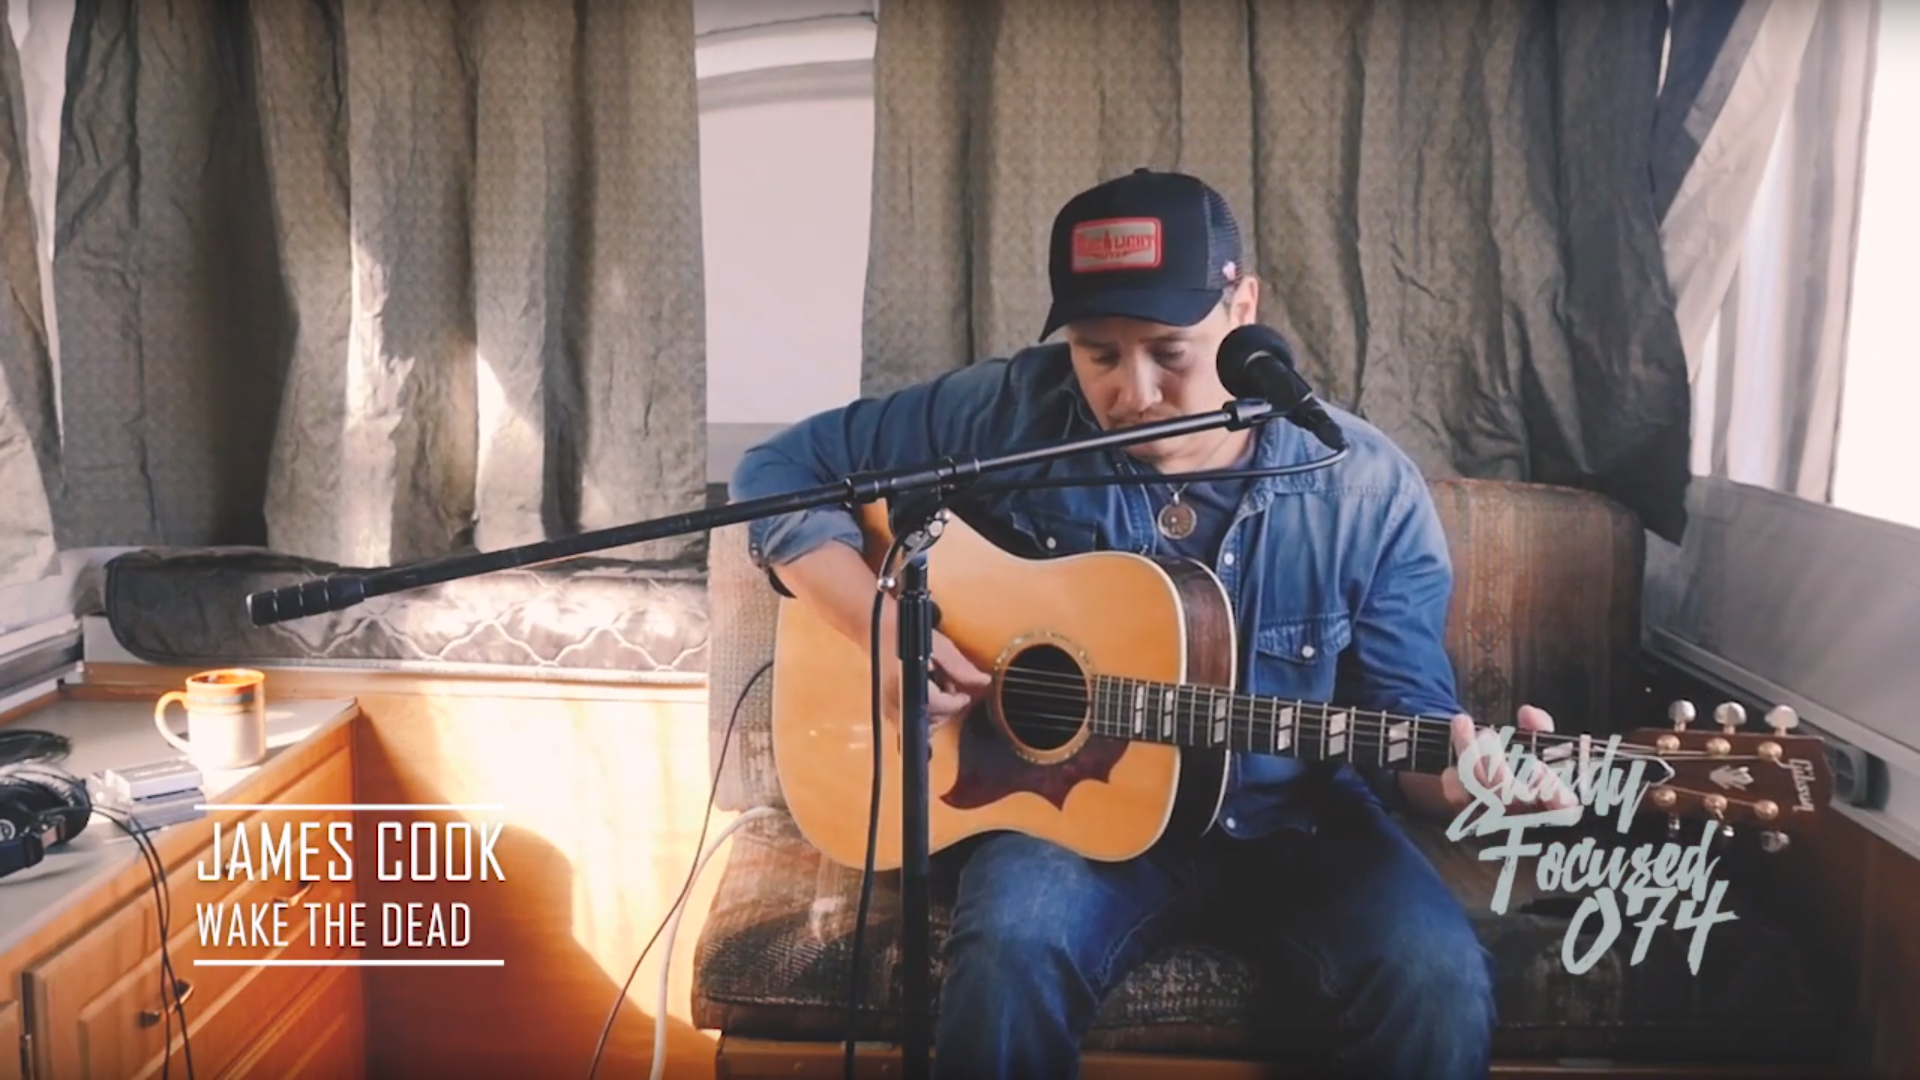 James Cook interview regarding his new album Tall Tales of a Brown Buffalo.